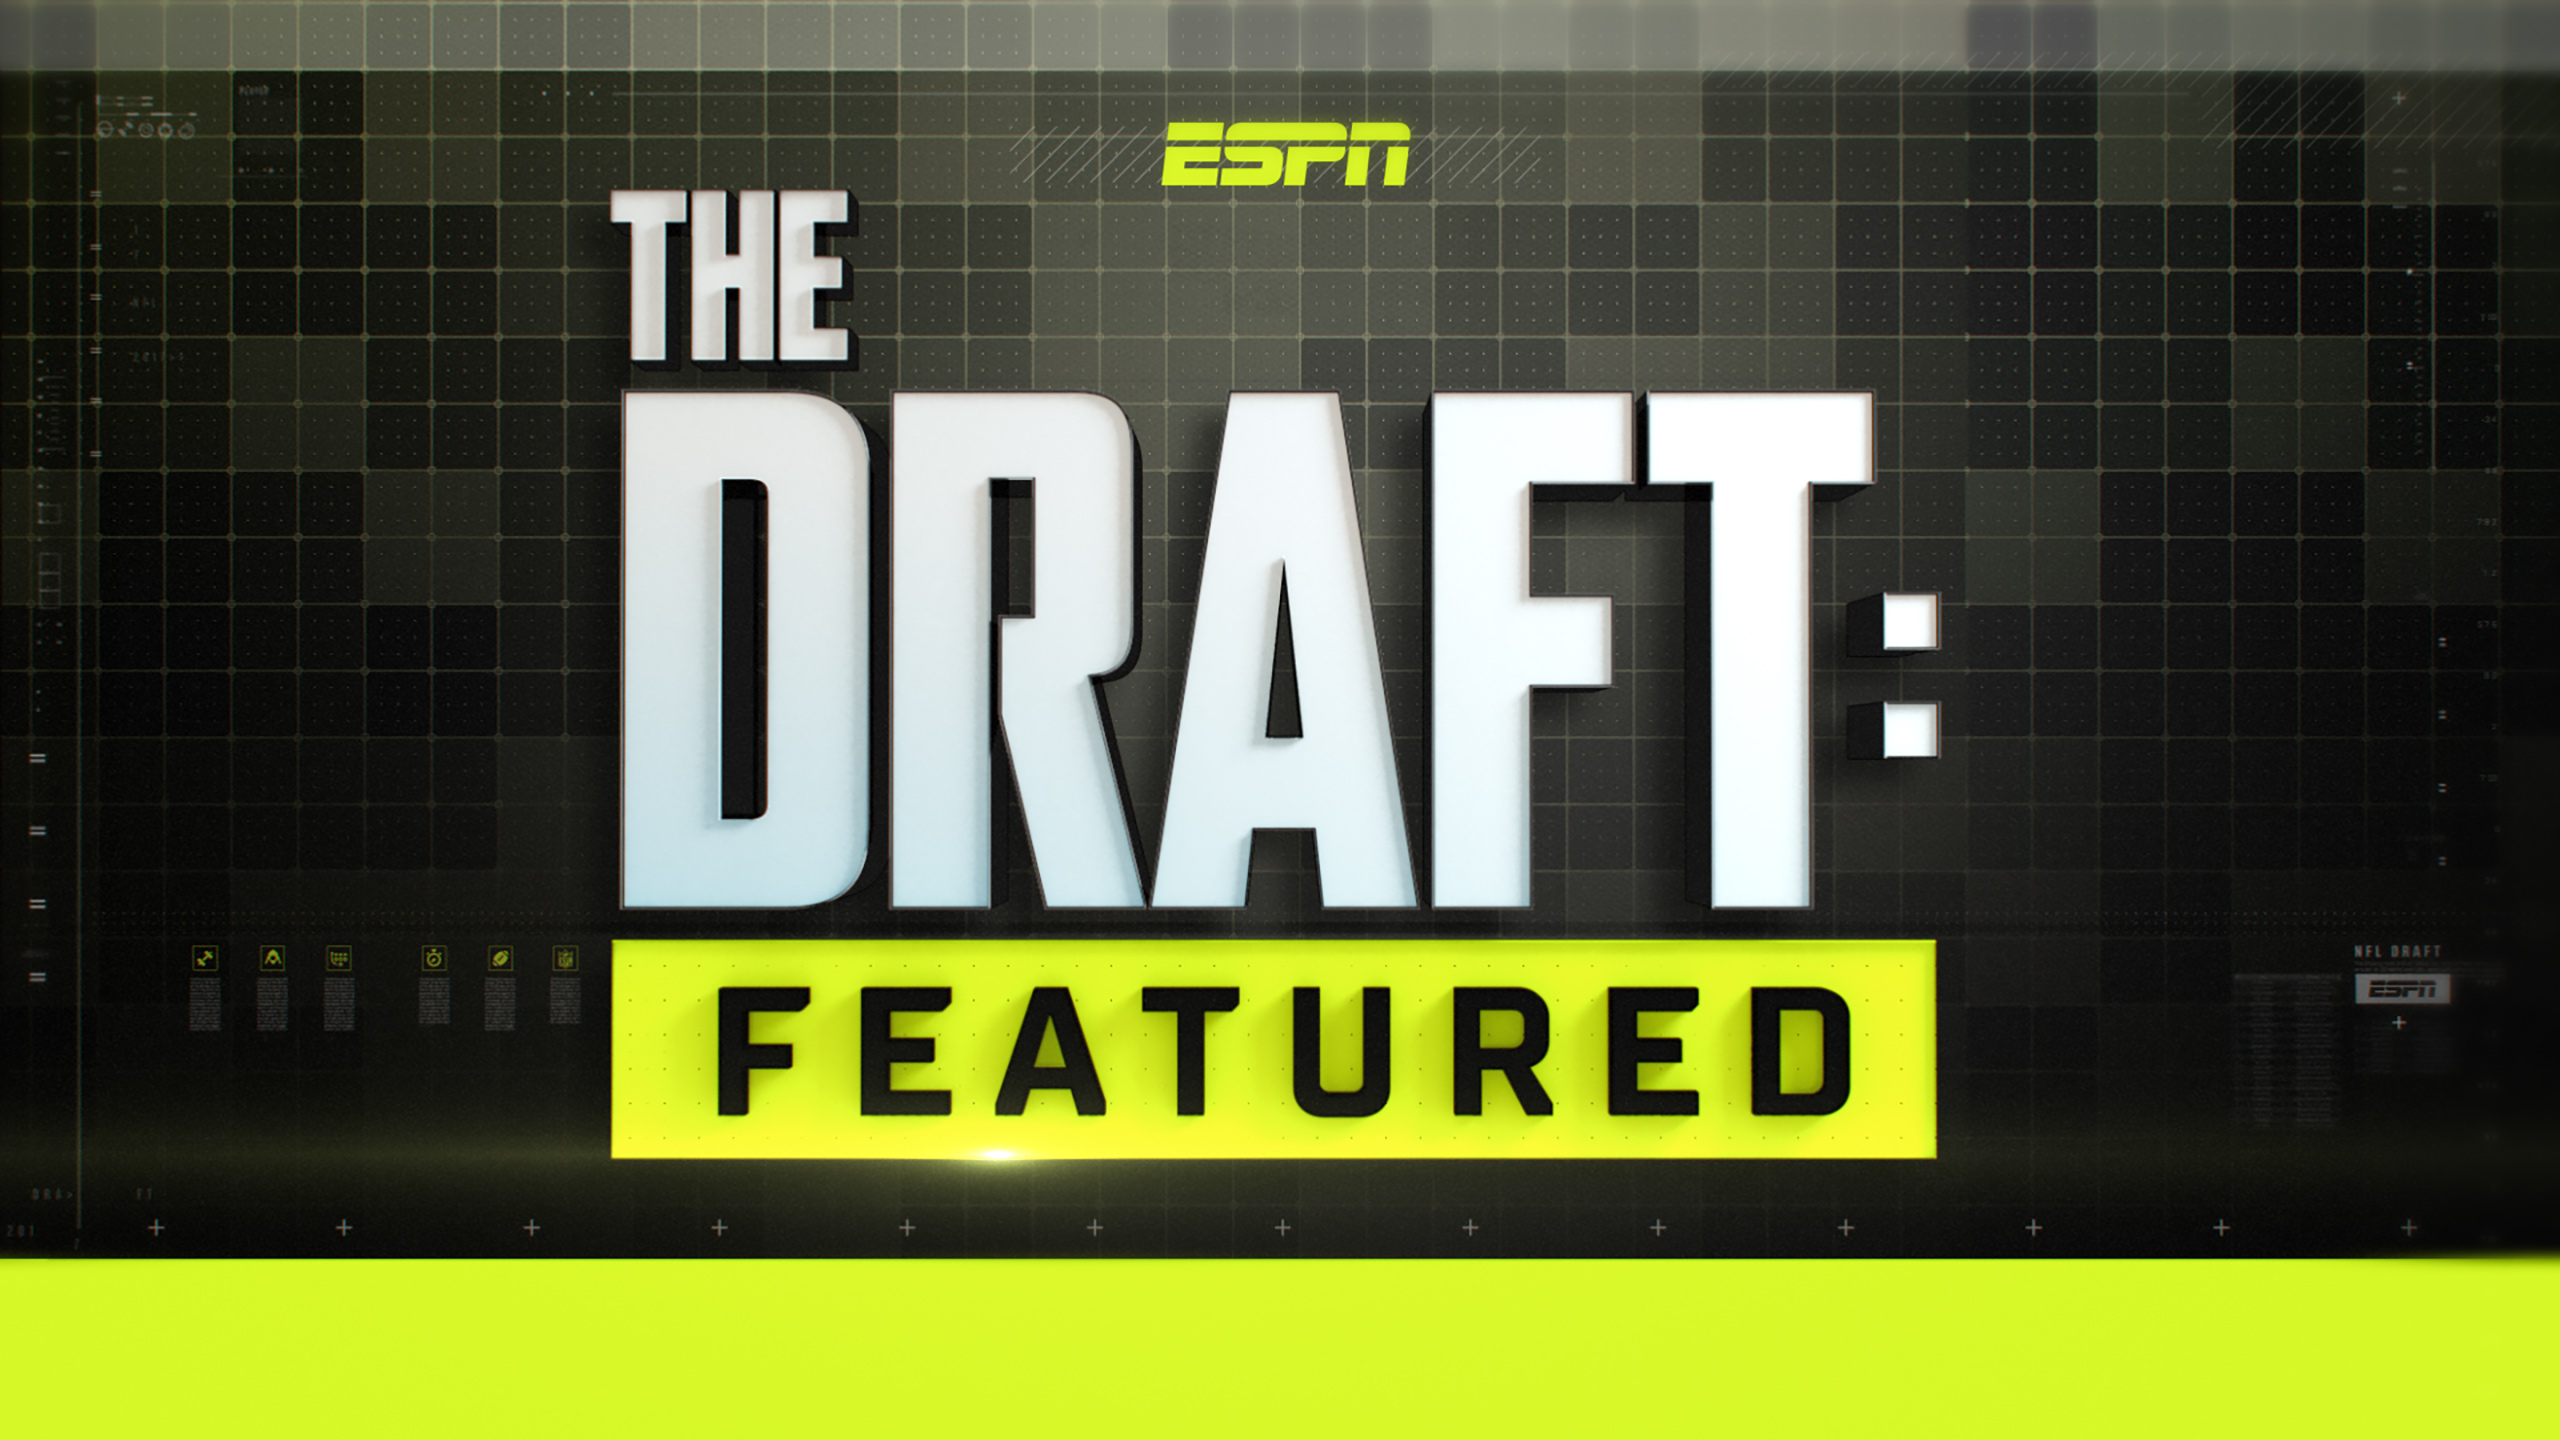 The Draft: Featured (Episode 1)